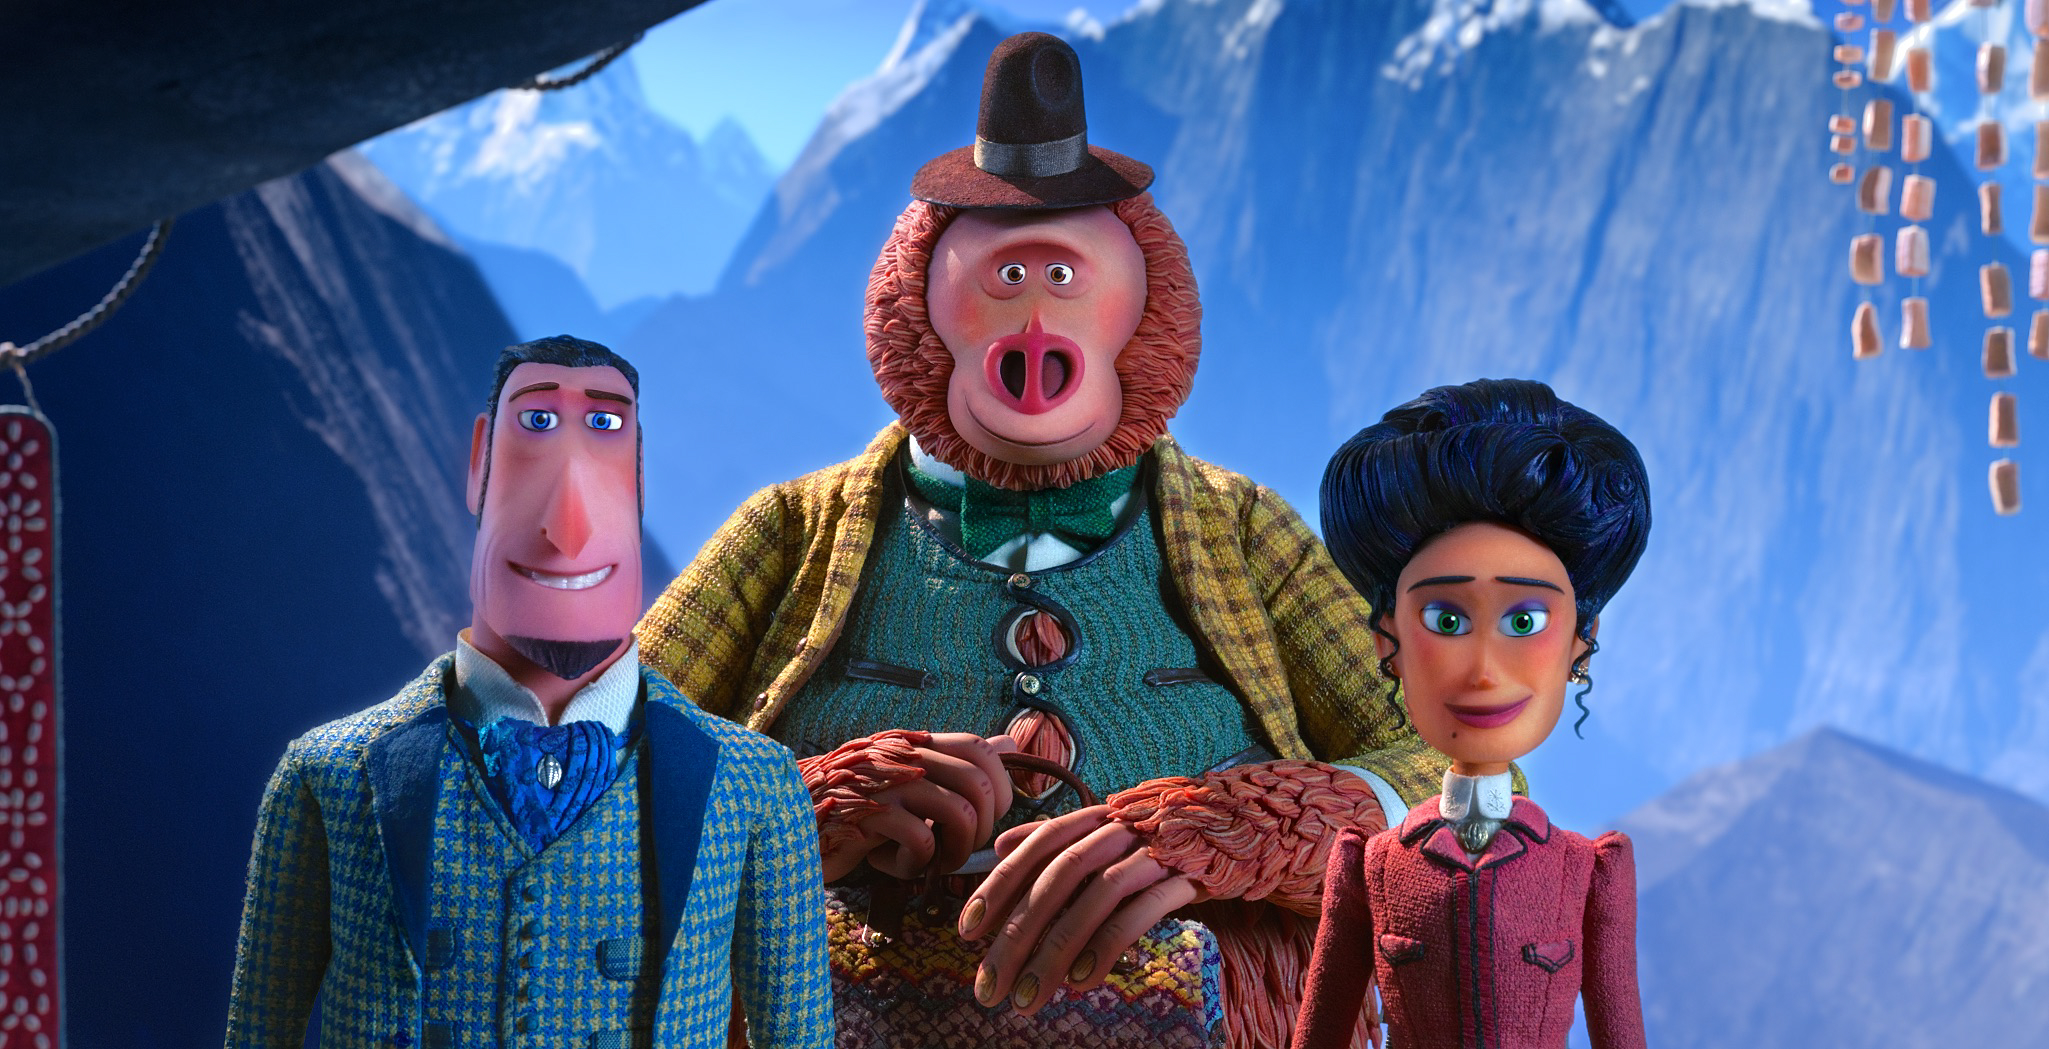 Sir Lionel Frost, Mr. Link and Lady Adelina Fortnight make their way to the HImalayas in Missing Link